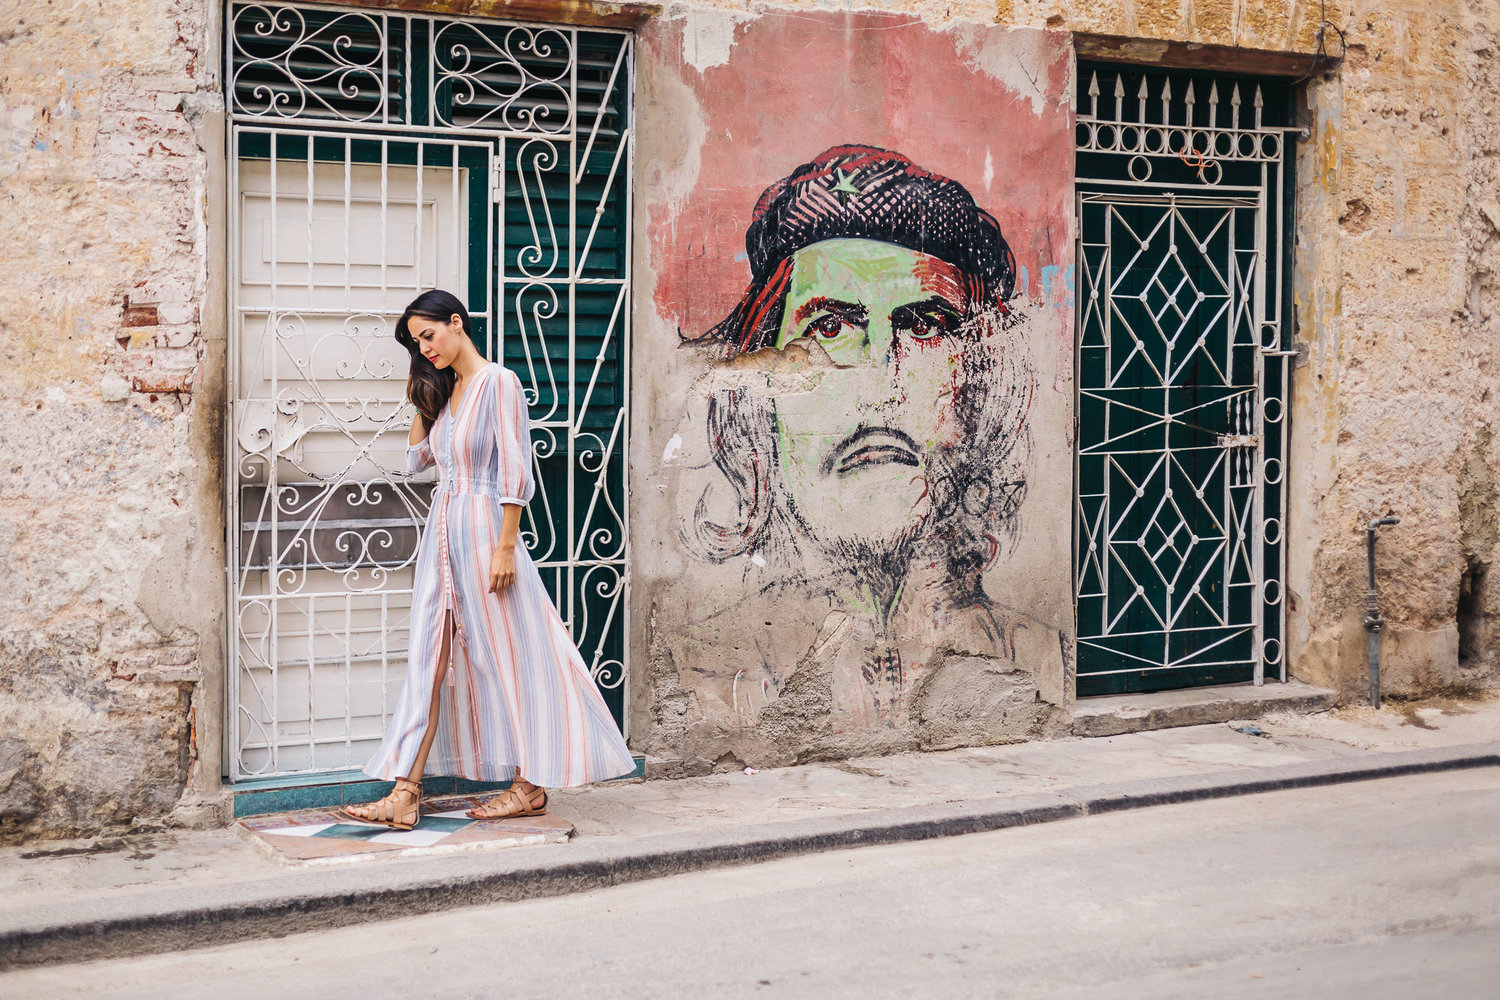 Top 15 Photos That Captures the Essence of Havana Cuba